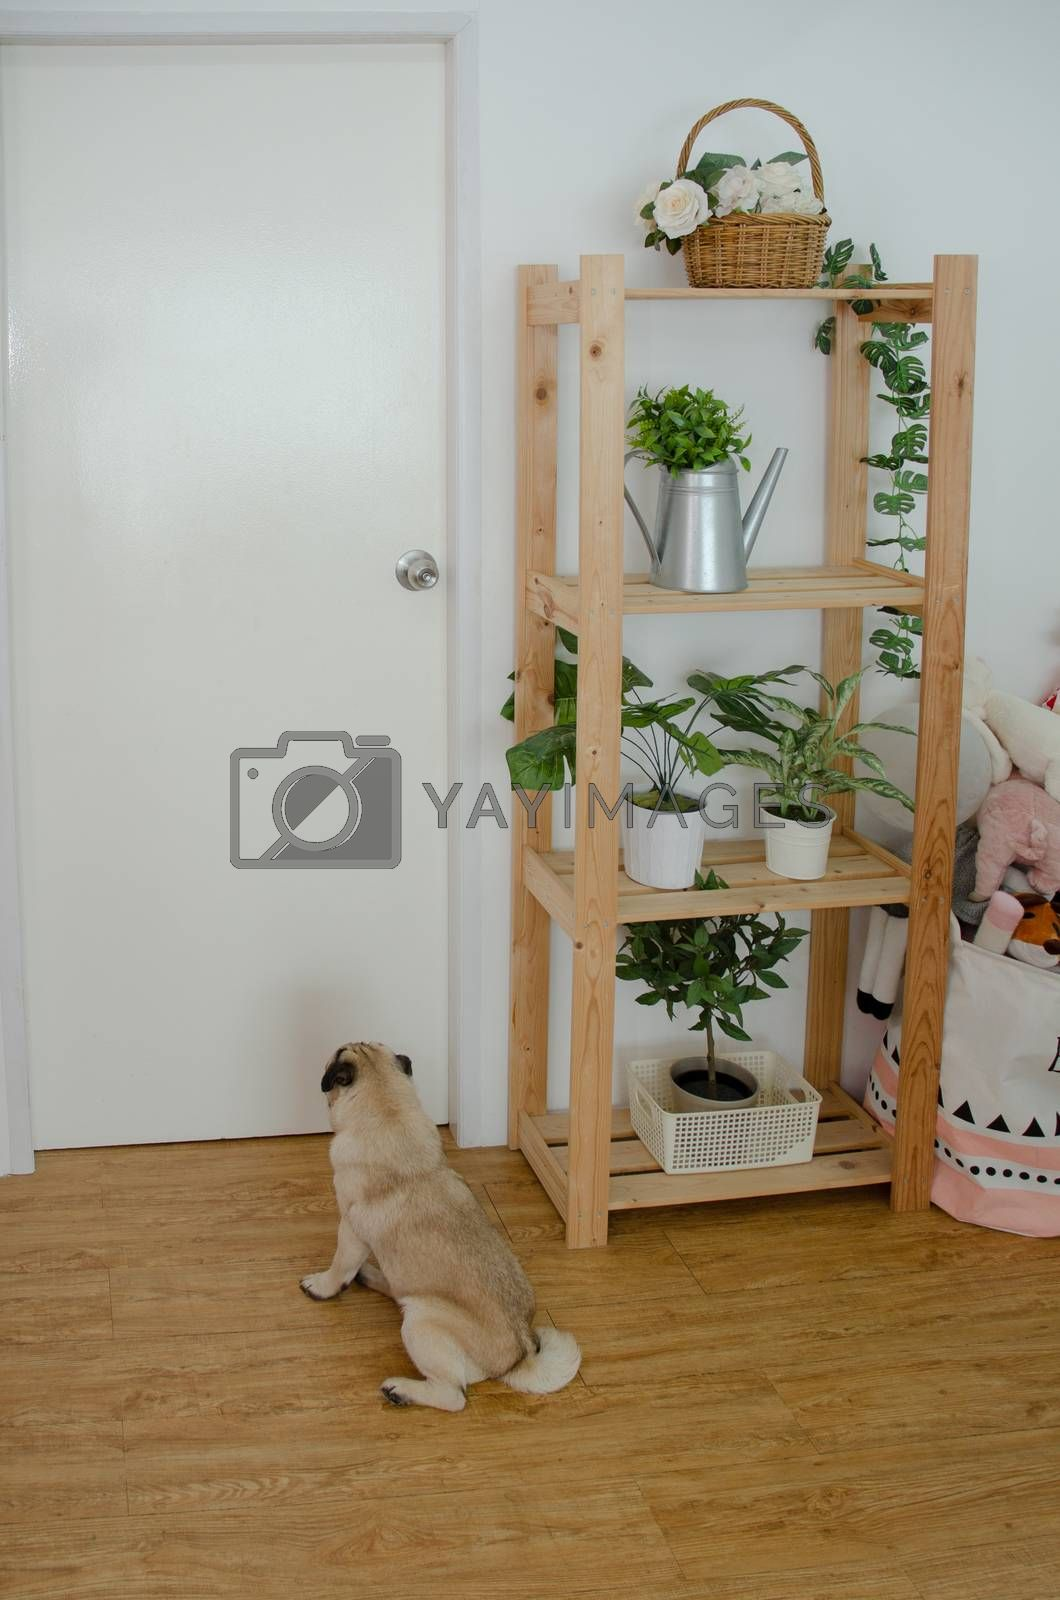 Brown dog fur face Lie in the room And looking straight ahead in the morning.Do not focus on objects.Cute fat male pet on brown wood floor.Male dog plug.